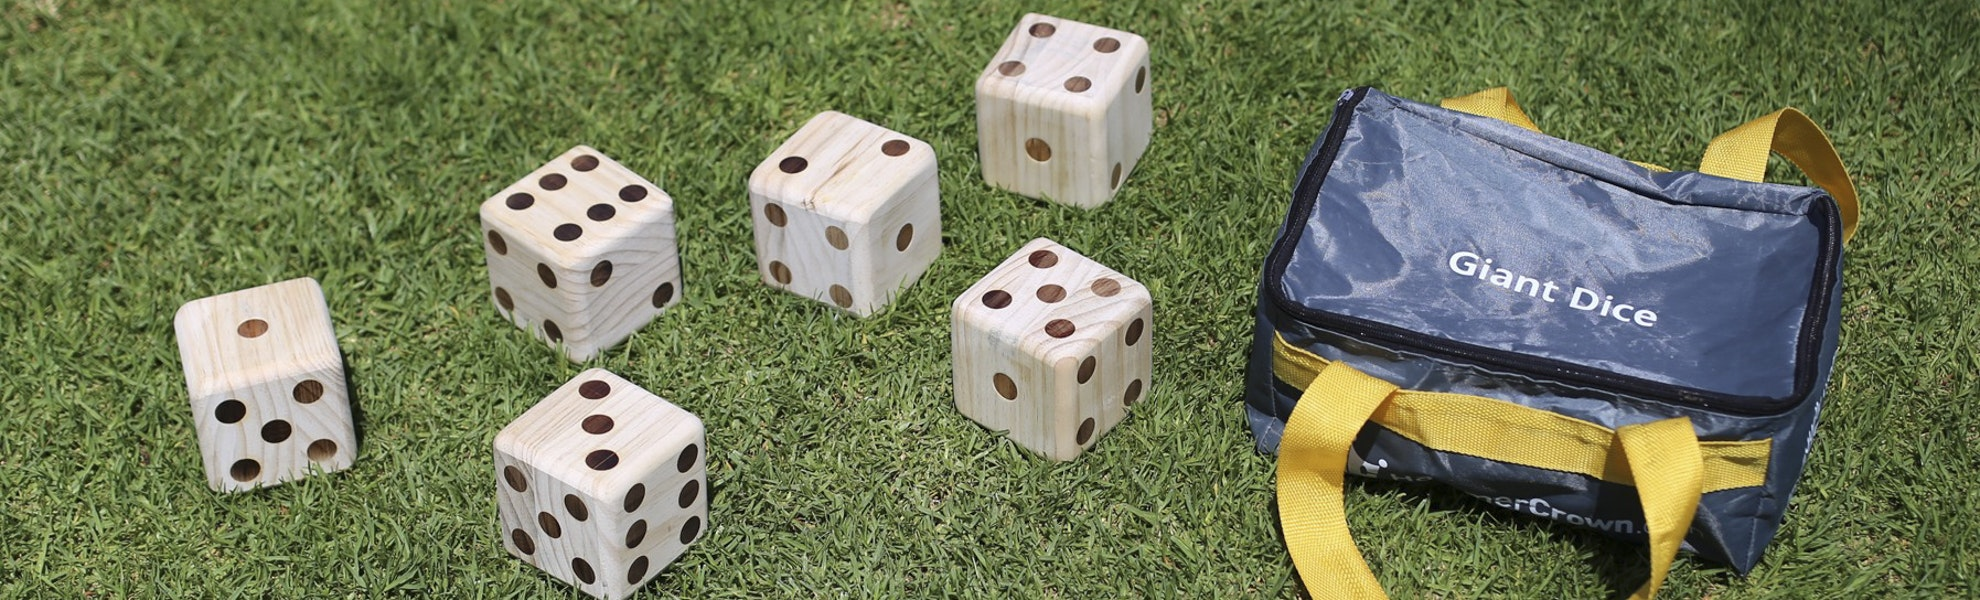 Tosso Outdoor Giant Dice and Dominoes